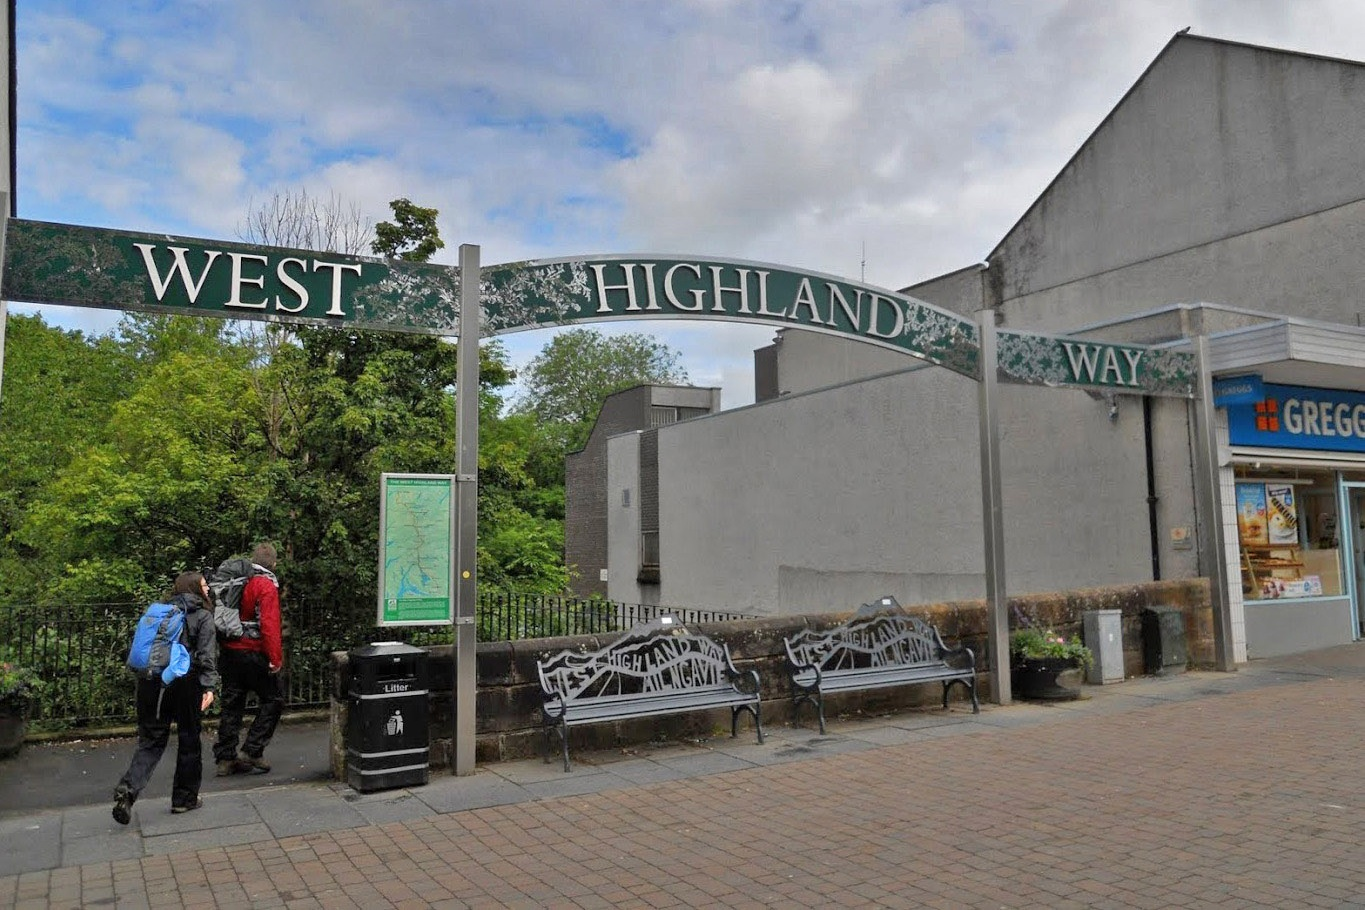 Throughout the year many events take place in the town - including the Highland Games, Cycling Events, Car Events, Milngavie Folk Club, so you will have plenty to choose from on your visit. Don't forget the stunning Mugdock Country Park or Waterworks for a stroll and a coffee.